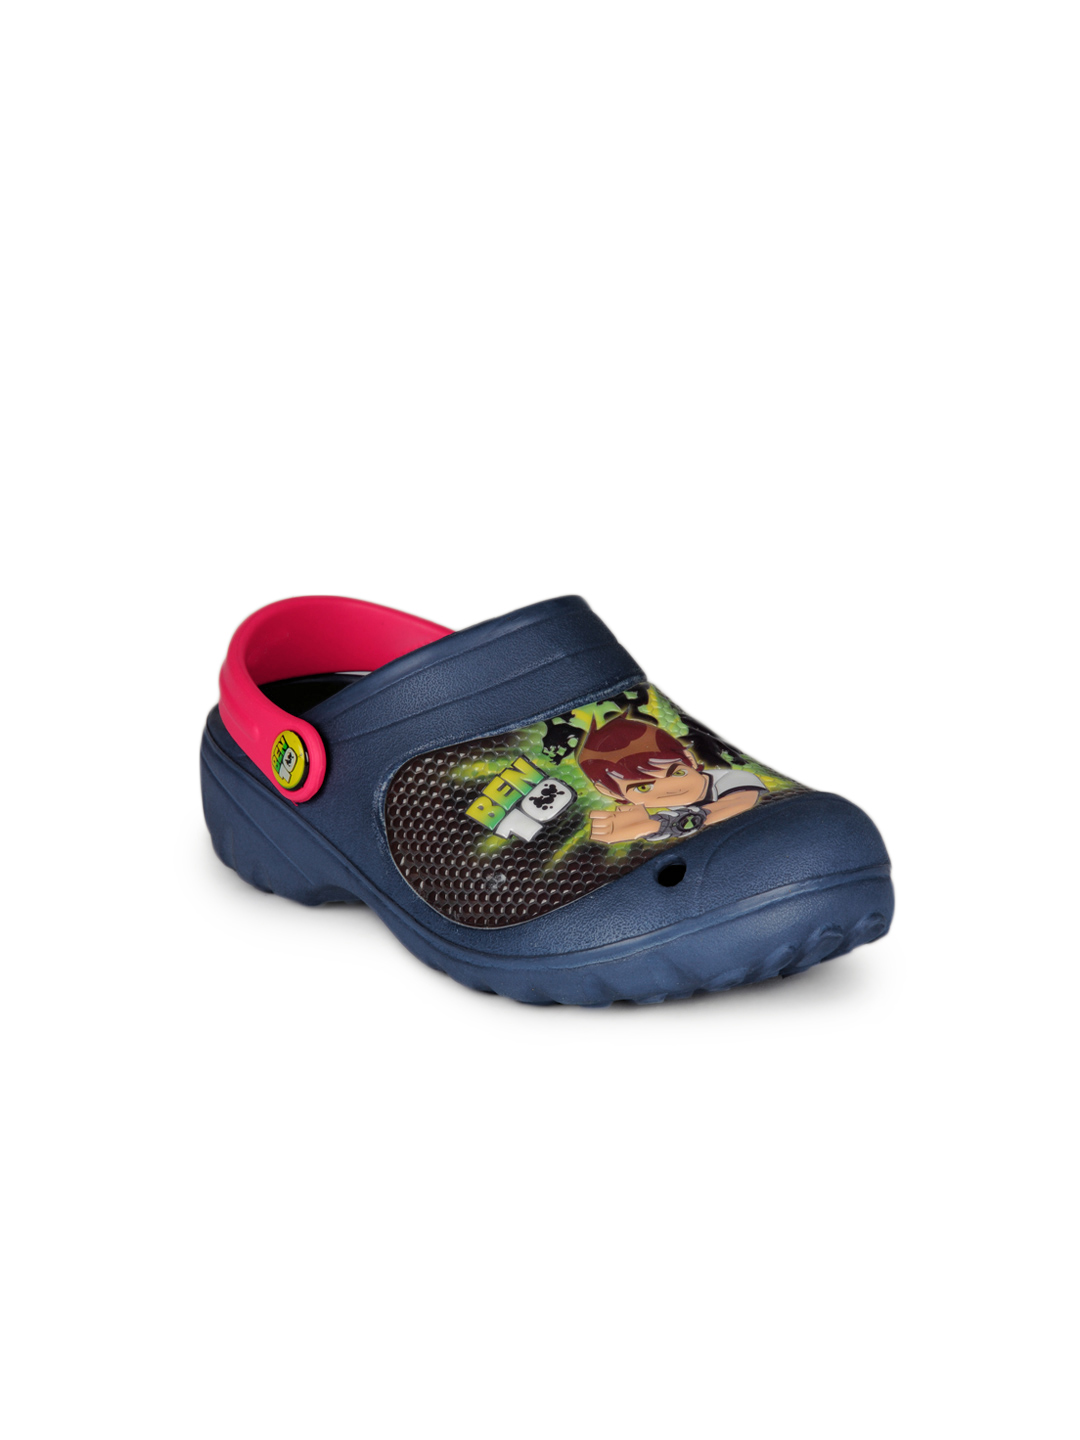 Ben 10 Boys Navy Blue Slippers